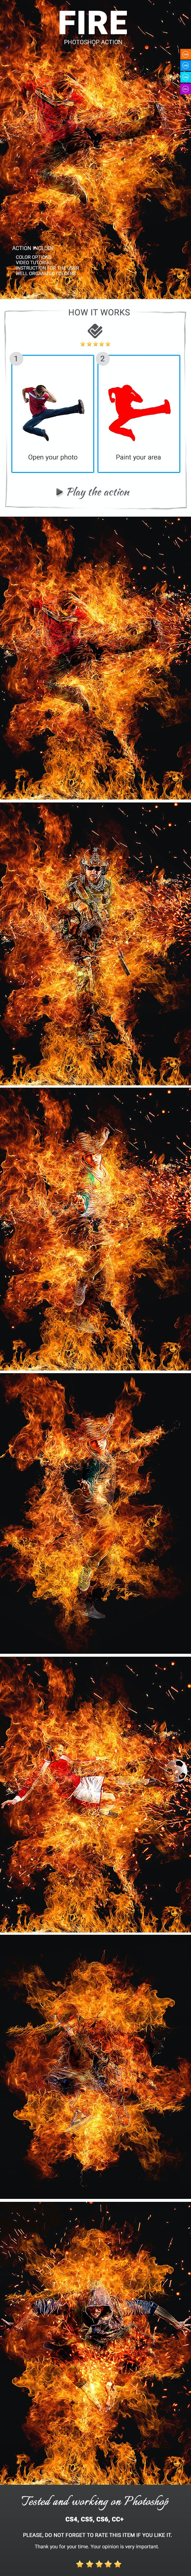 Fire Photoshop Action - Photo Effects Actions